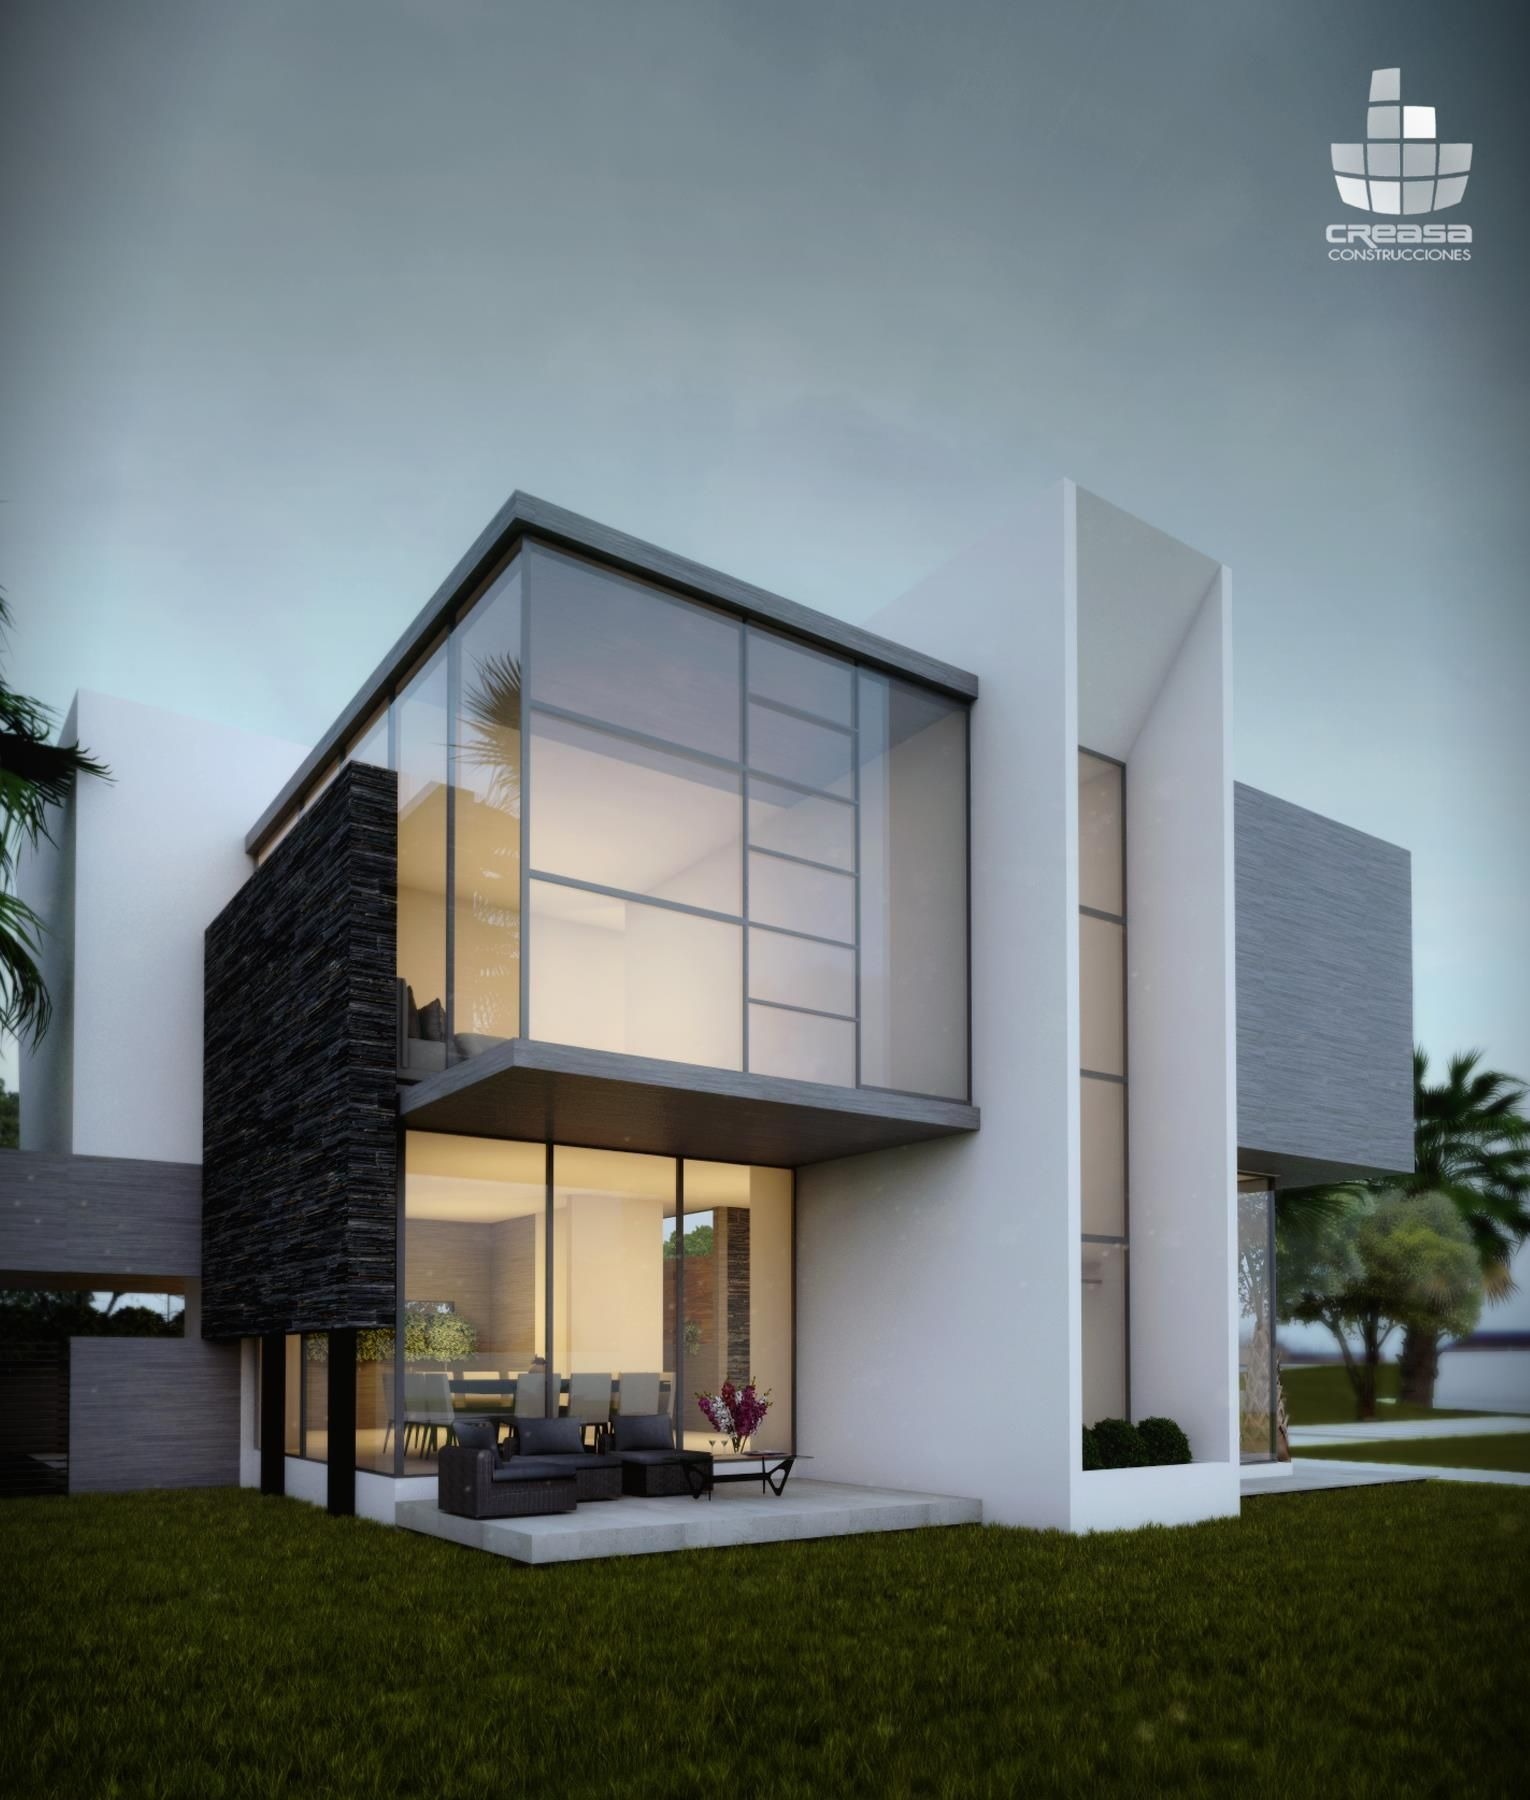 Creasa modern architecture pinterest villas house for Contemporary model house